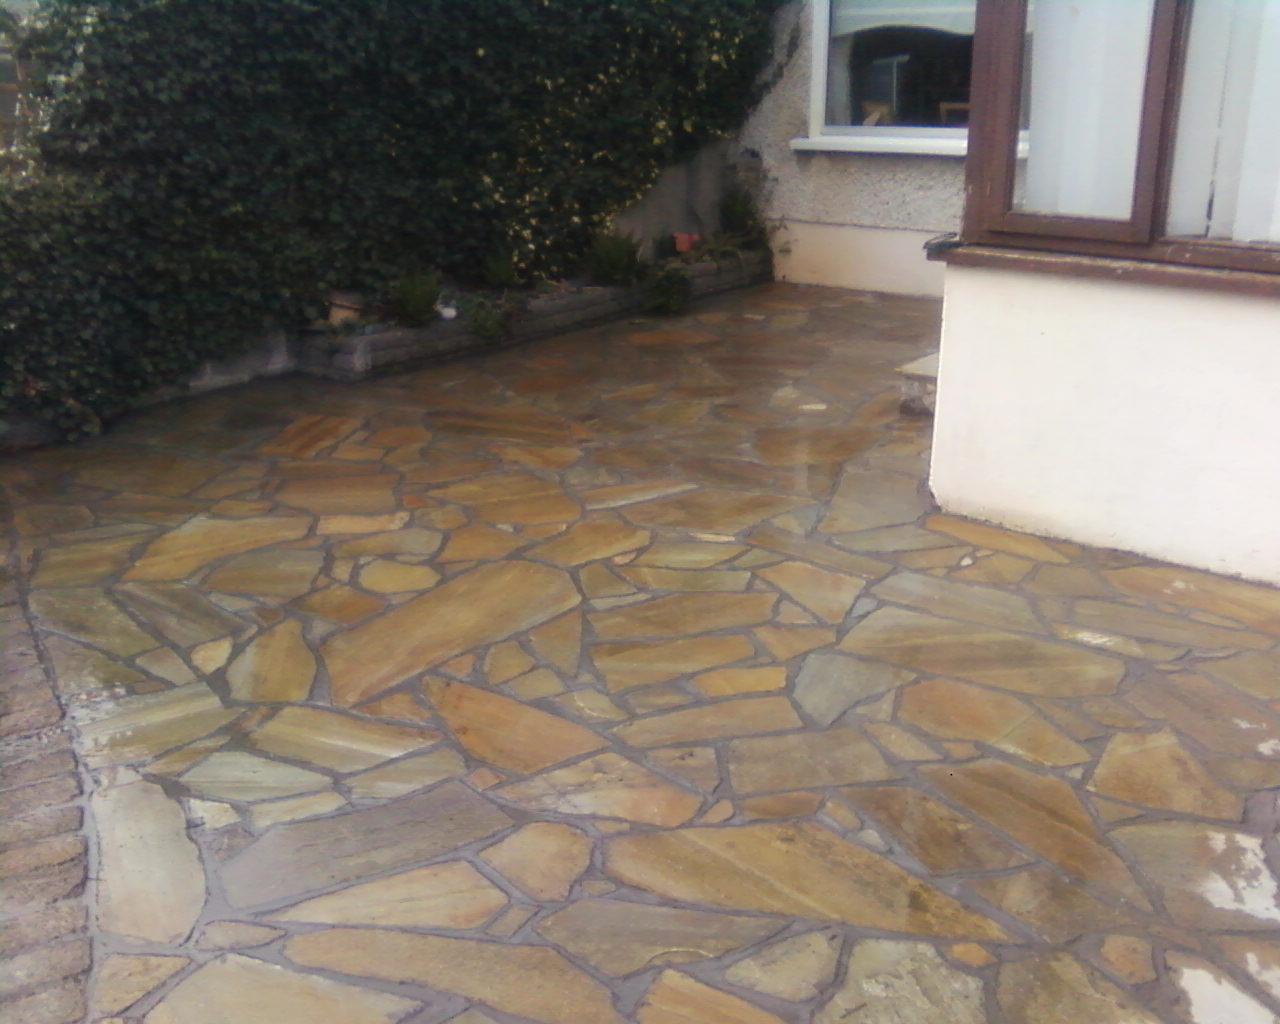 Pavescape Example Of Crazy Paving Style Donegal Quartz